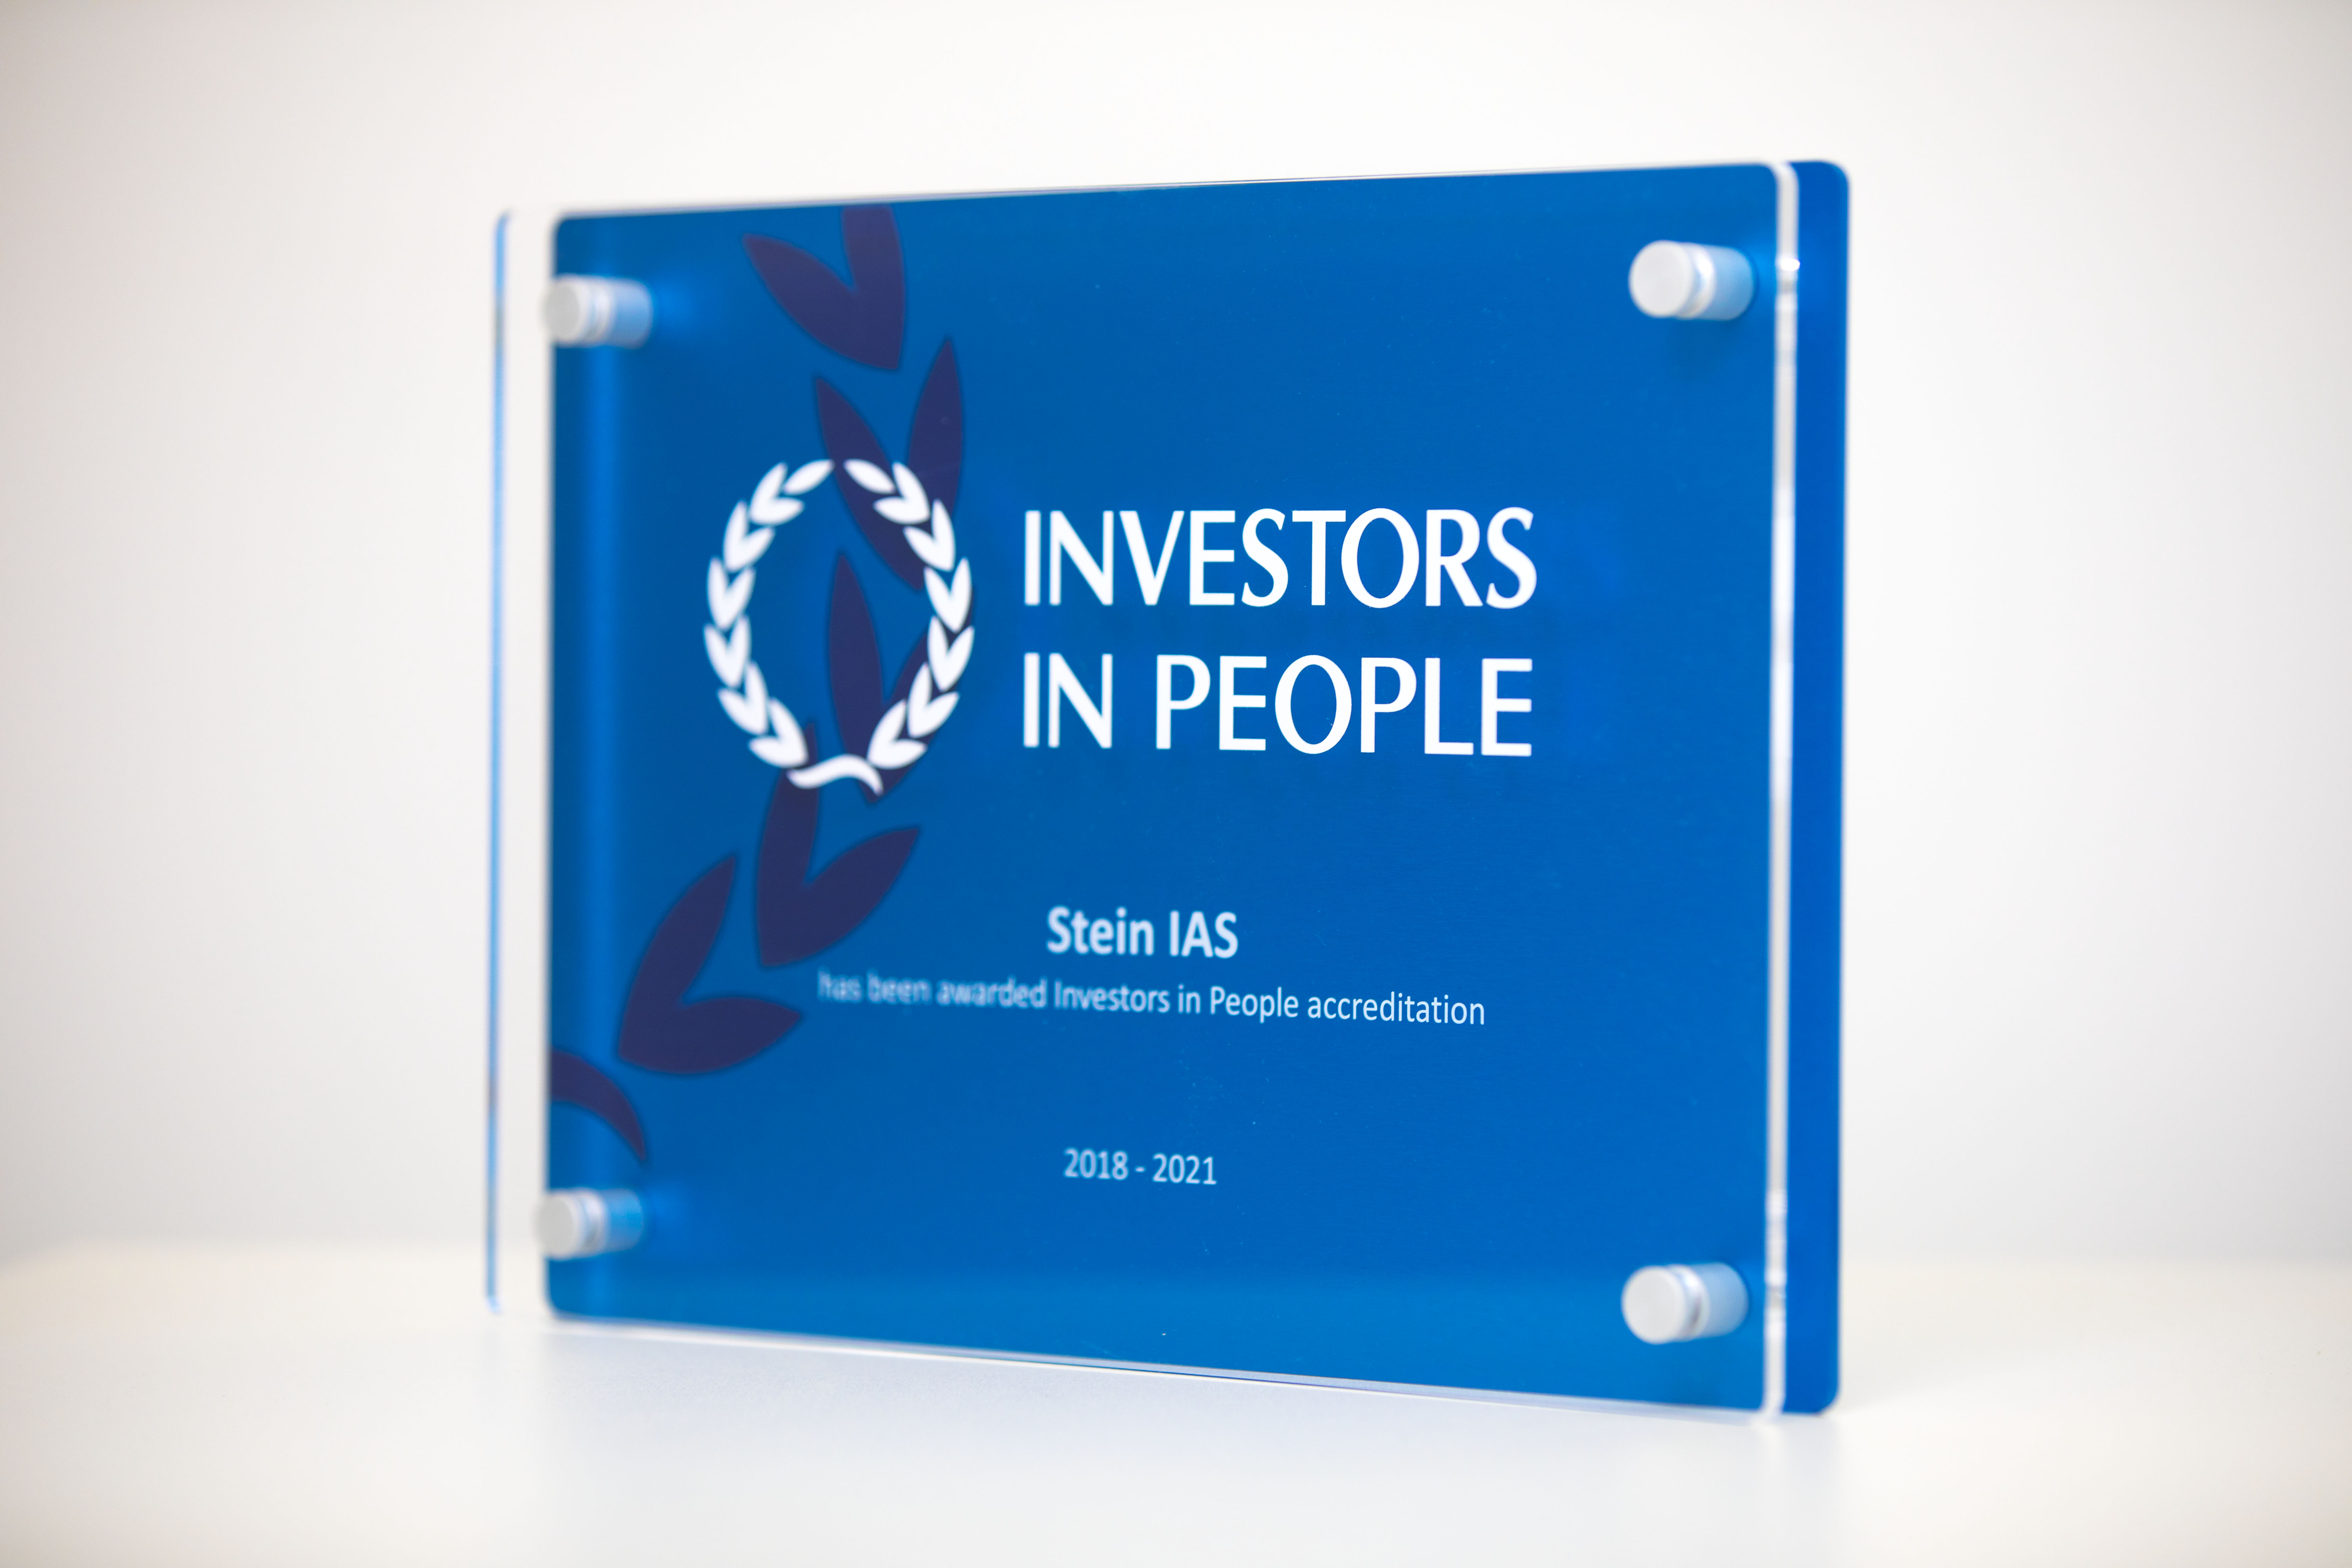 B2B Agency 10 years Investors in People accreditation